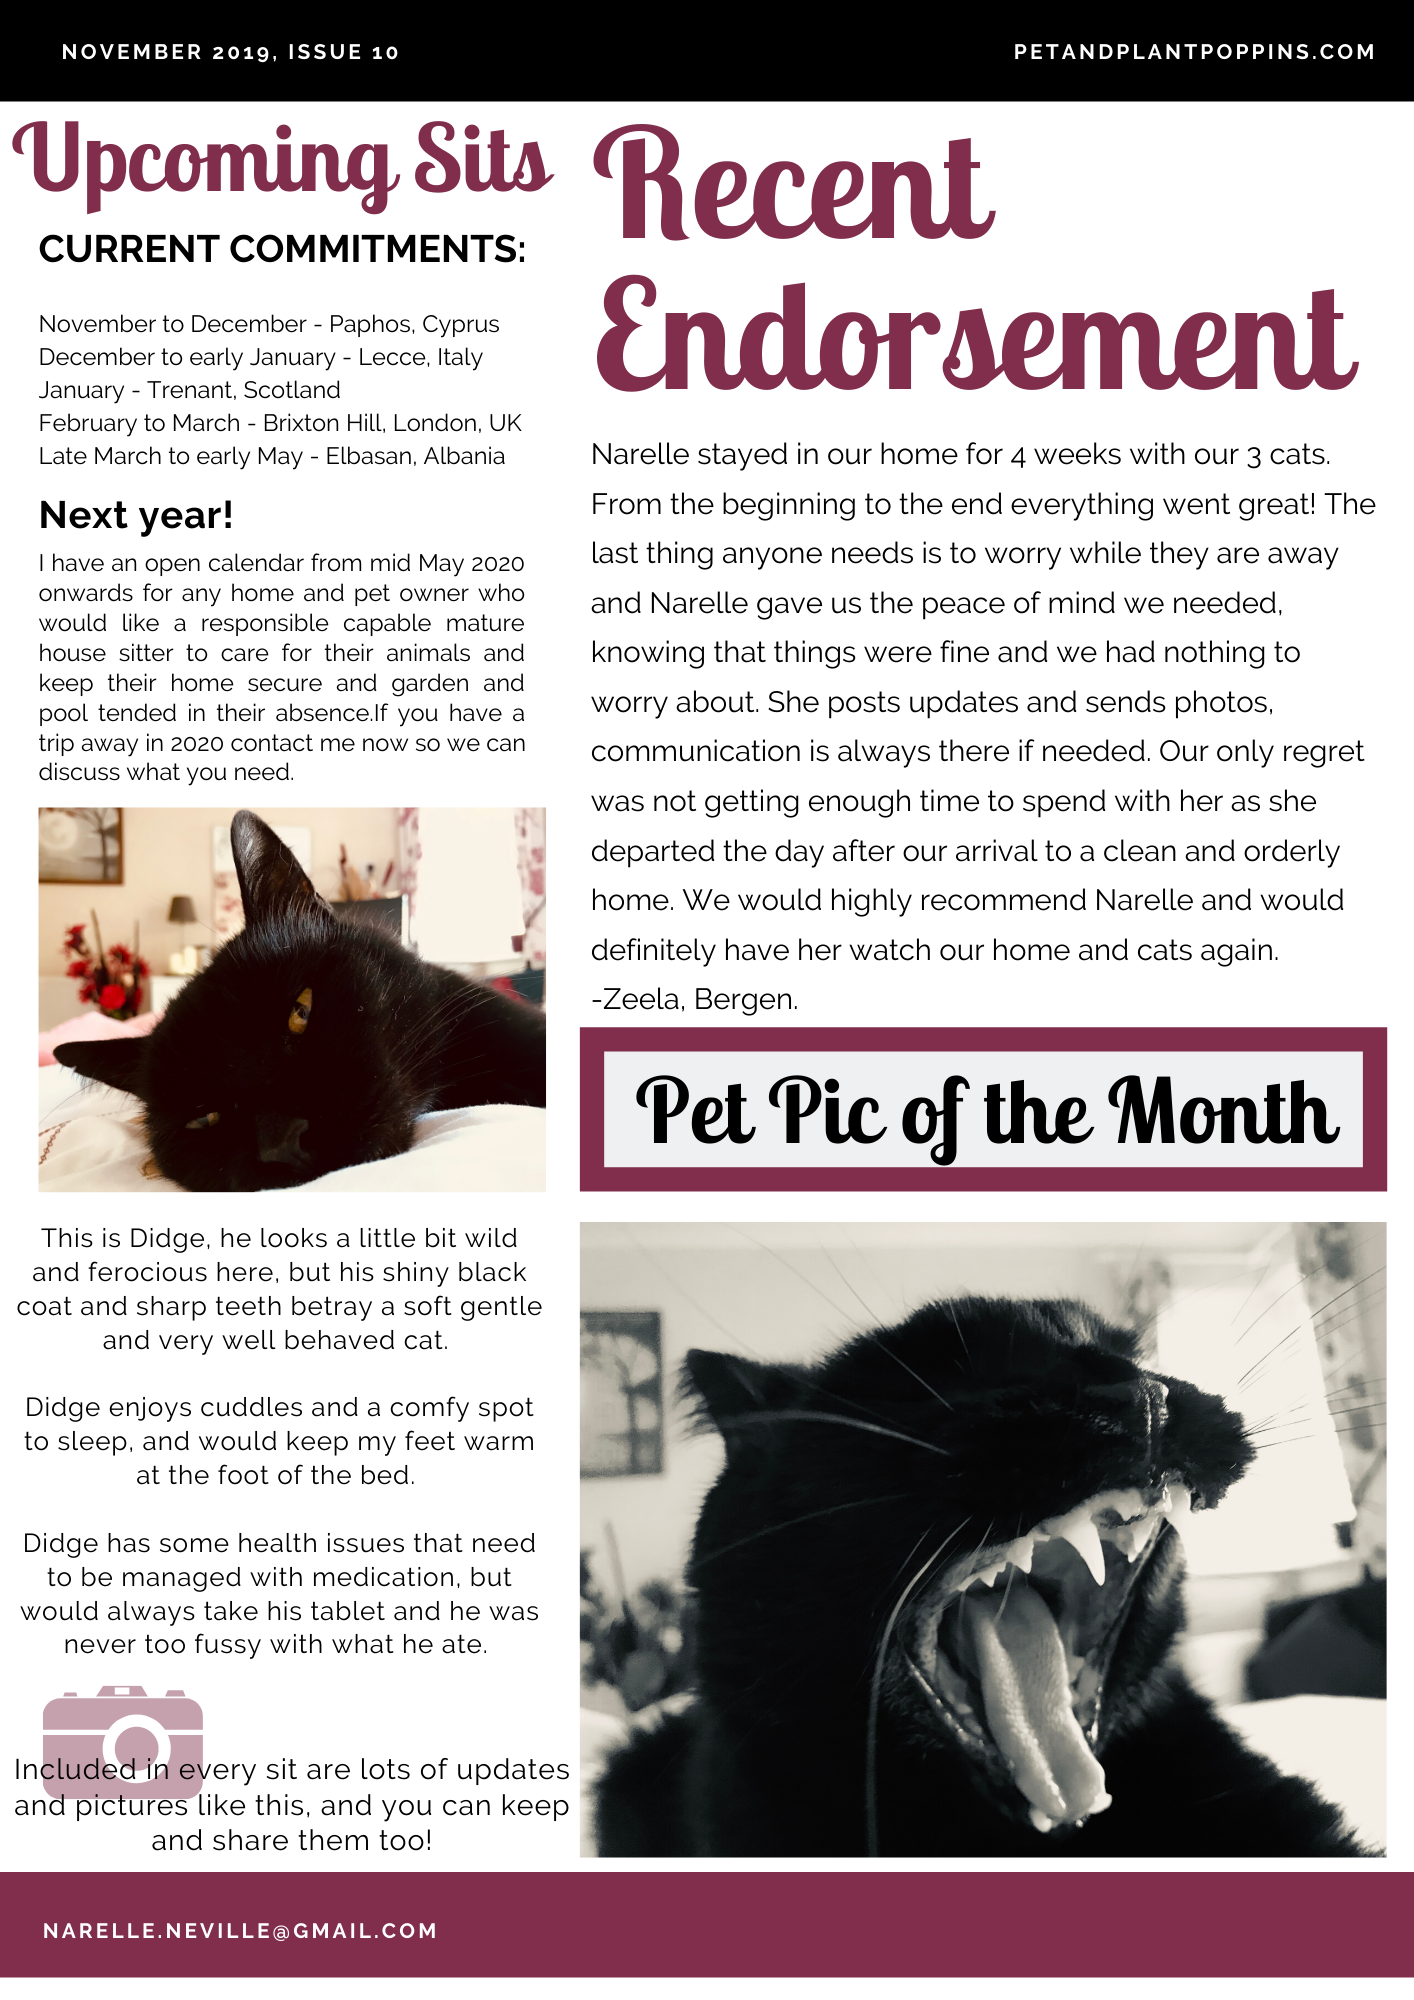 PPP Newsletter November 2019 page 2